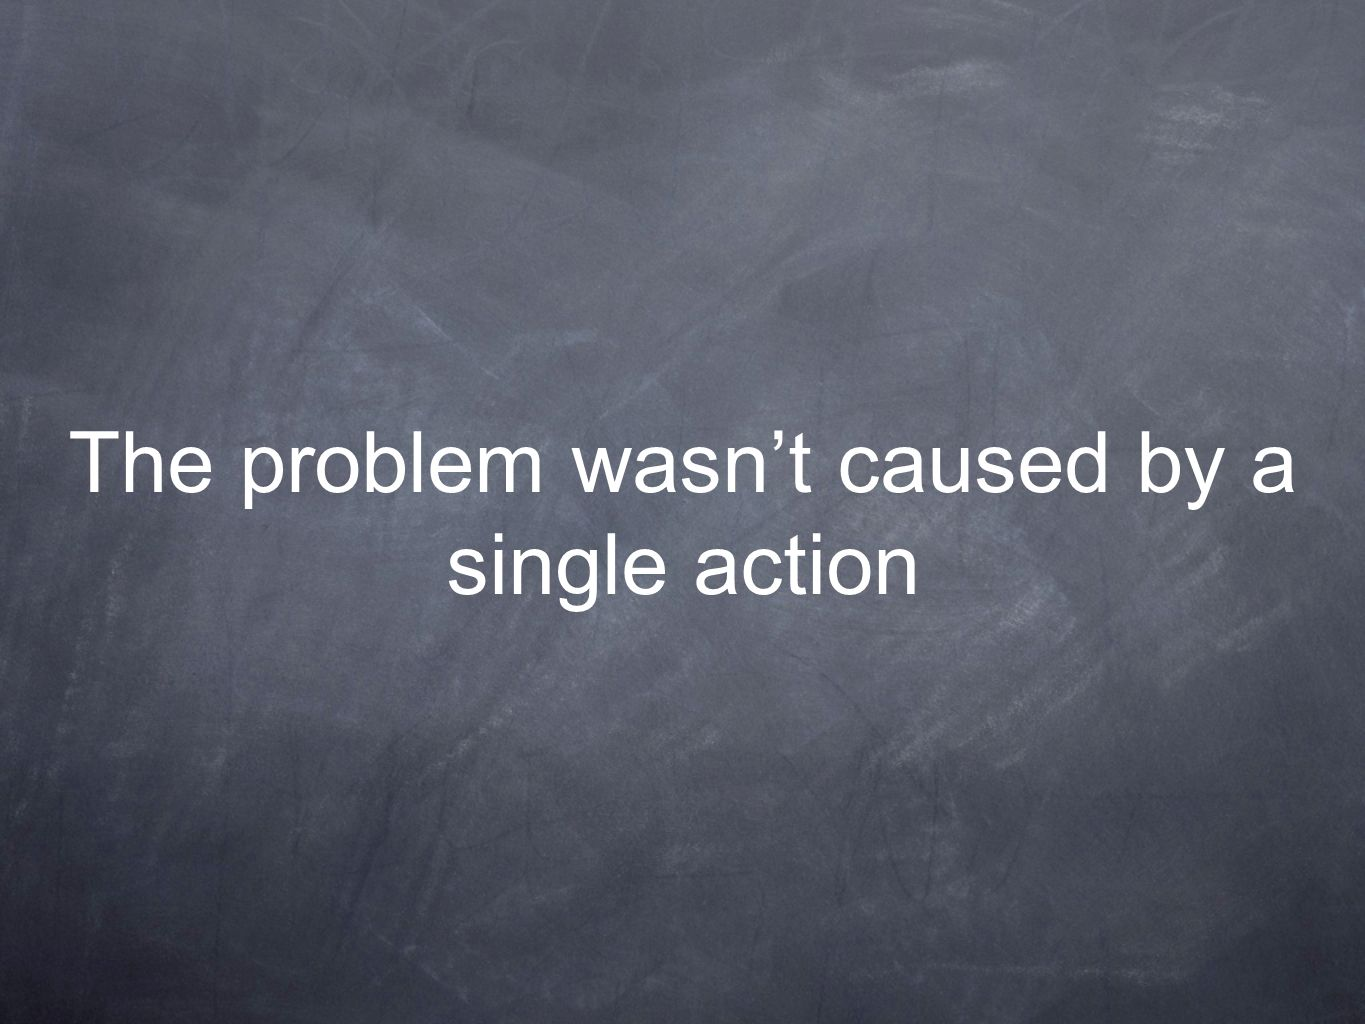 The problem wasnt caused by a single action